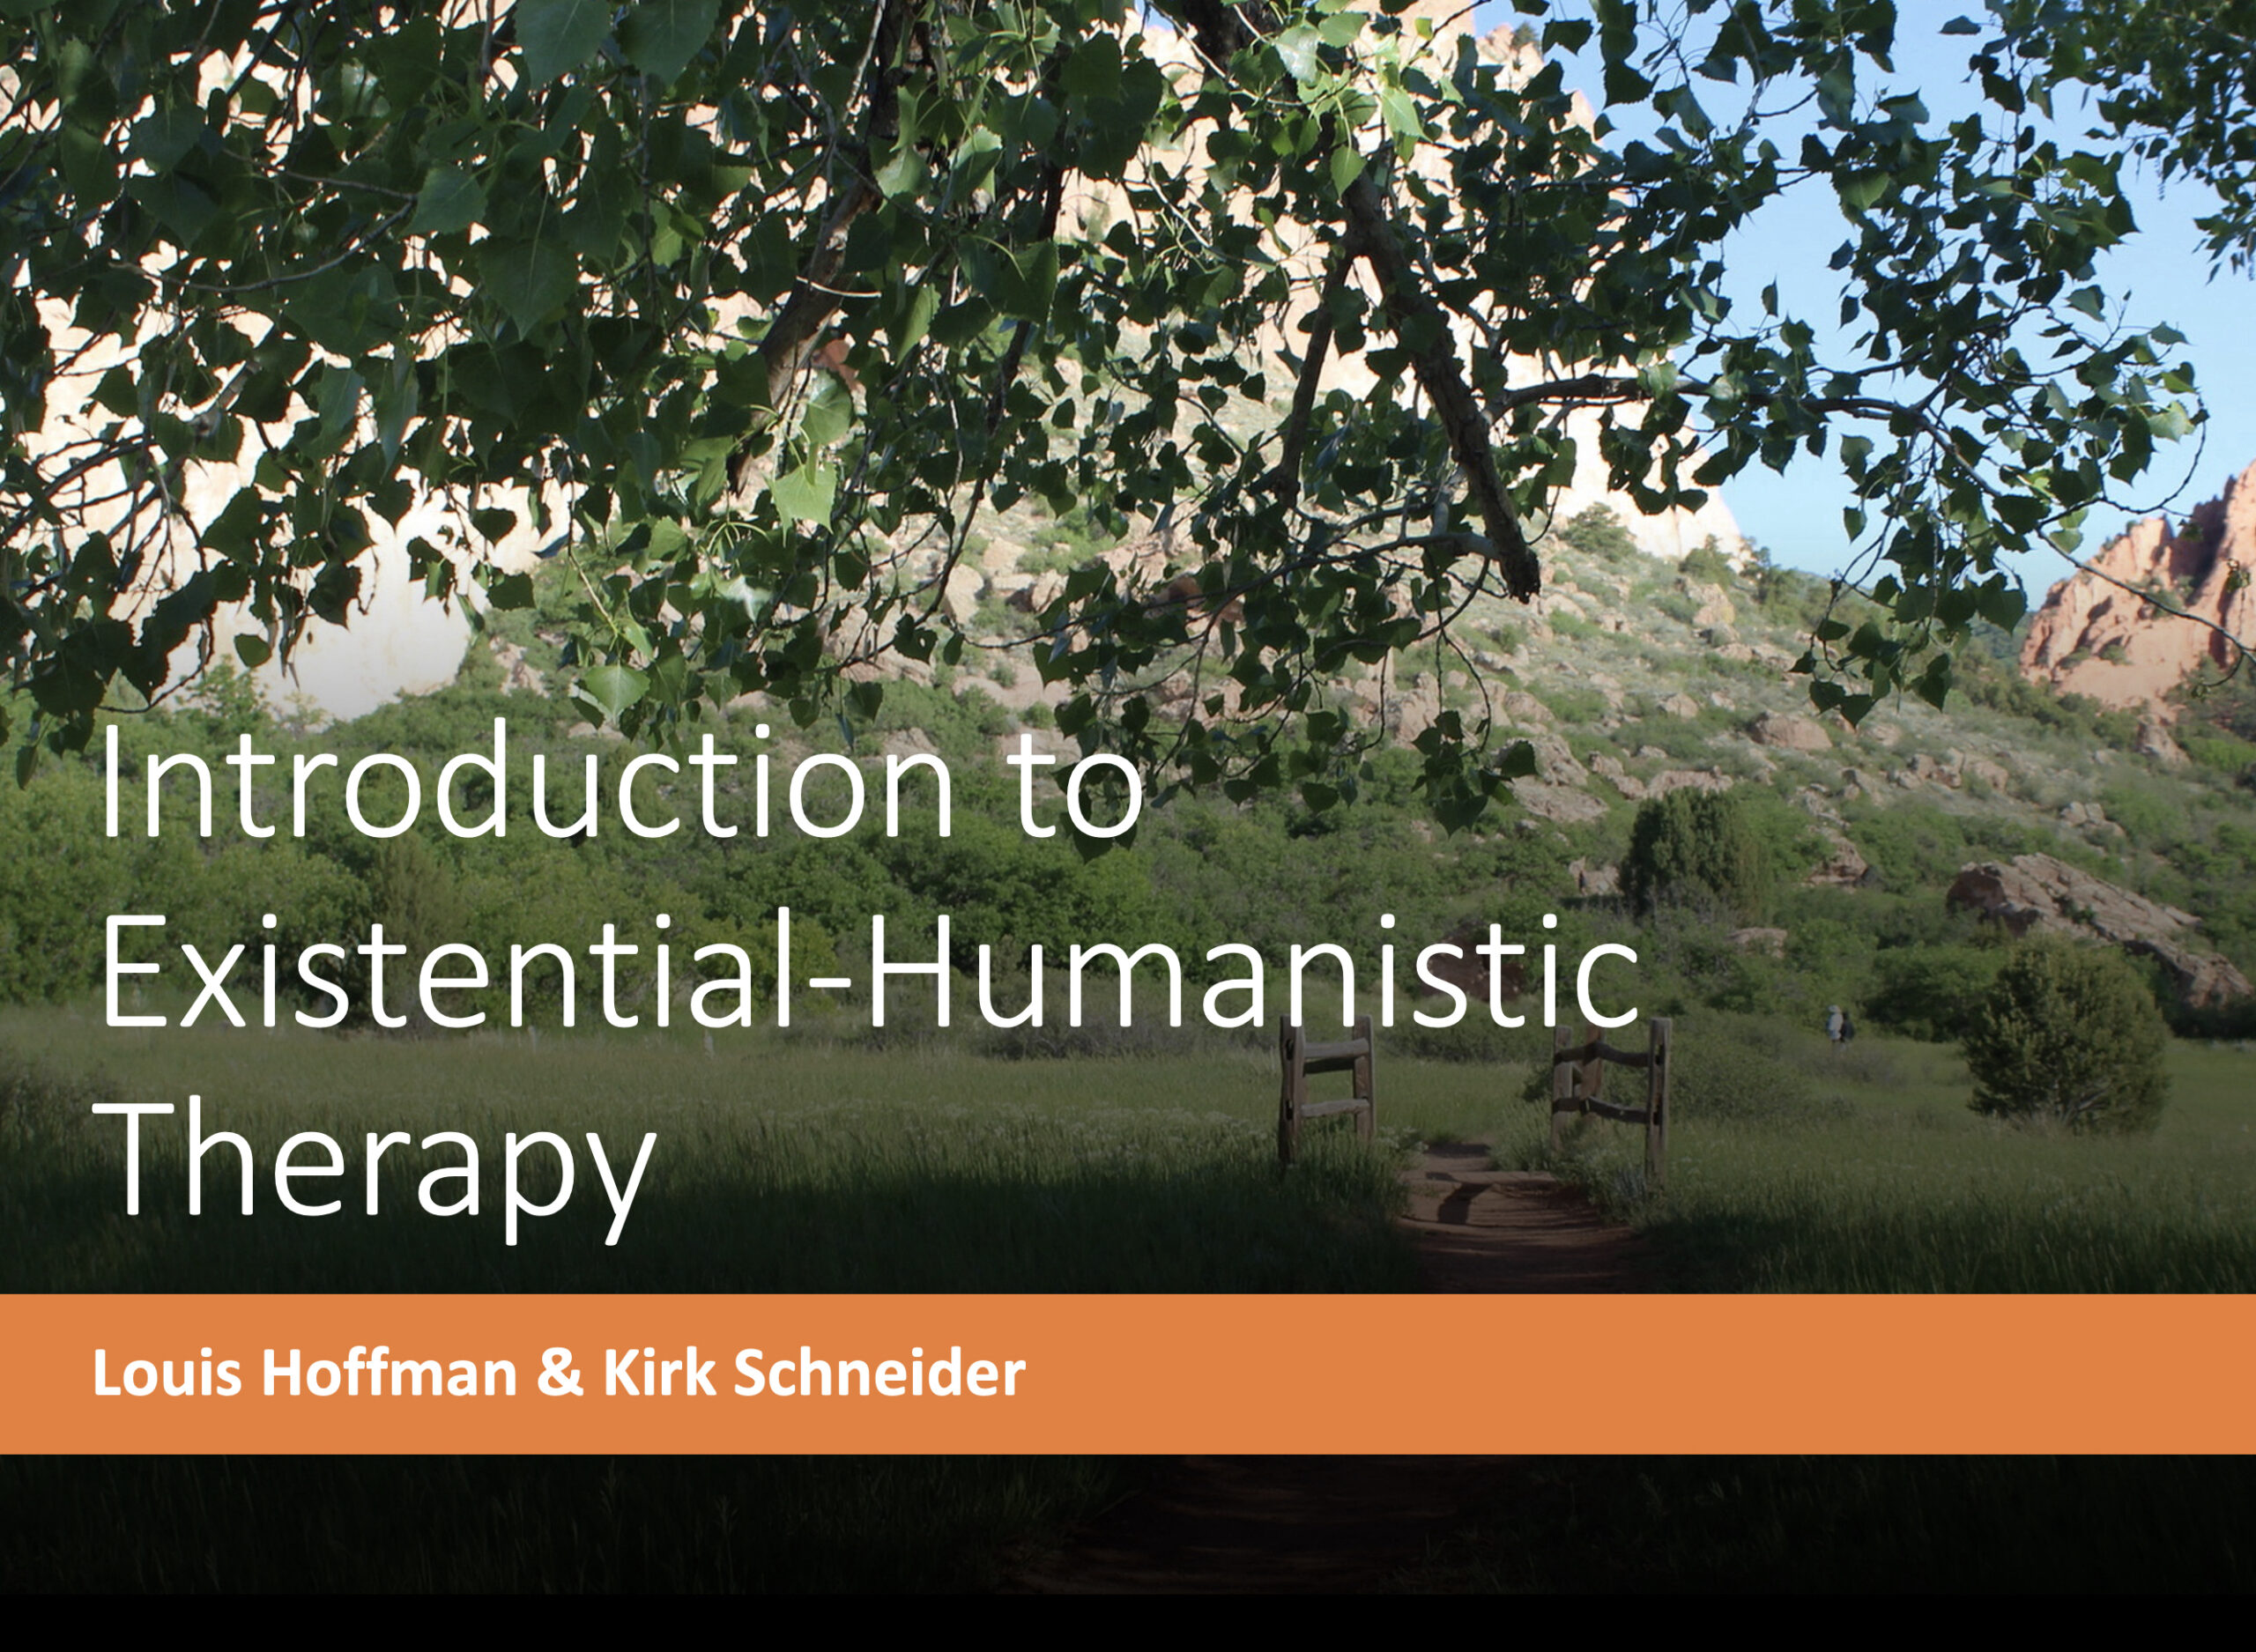 Introduction to Existential Humanistic Therapy (Archived Version) Image